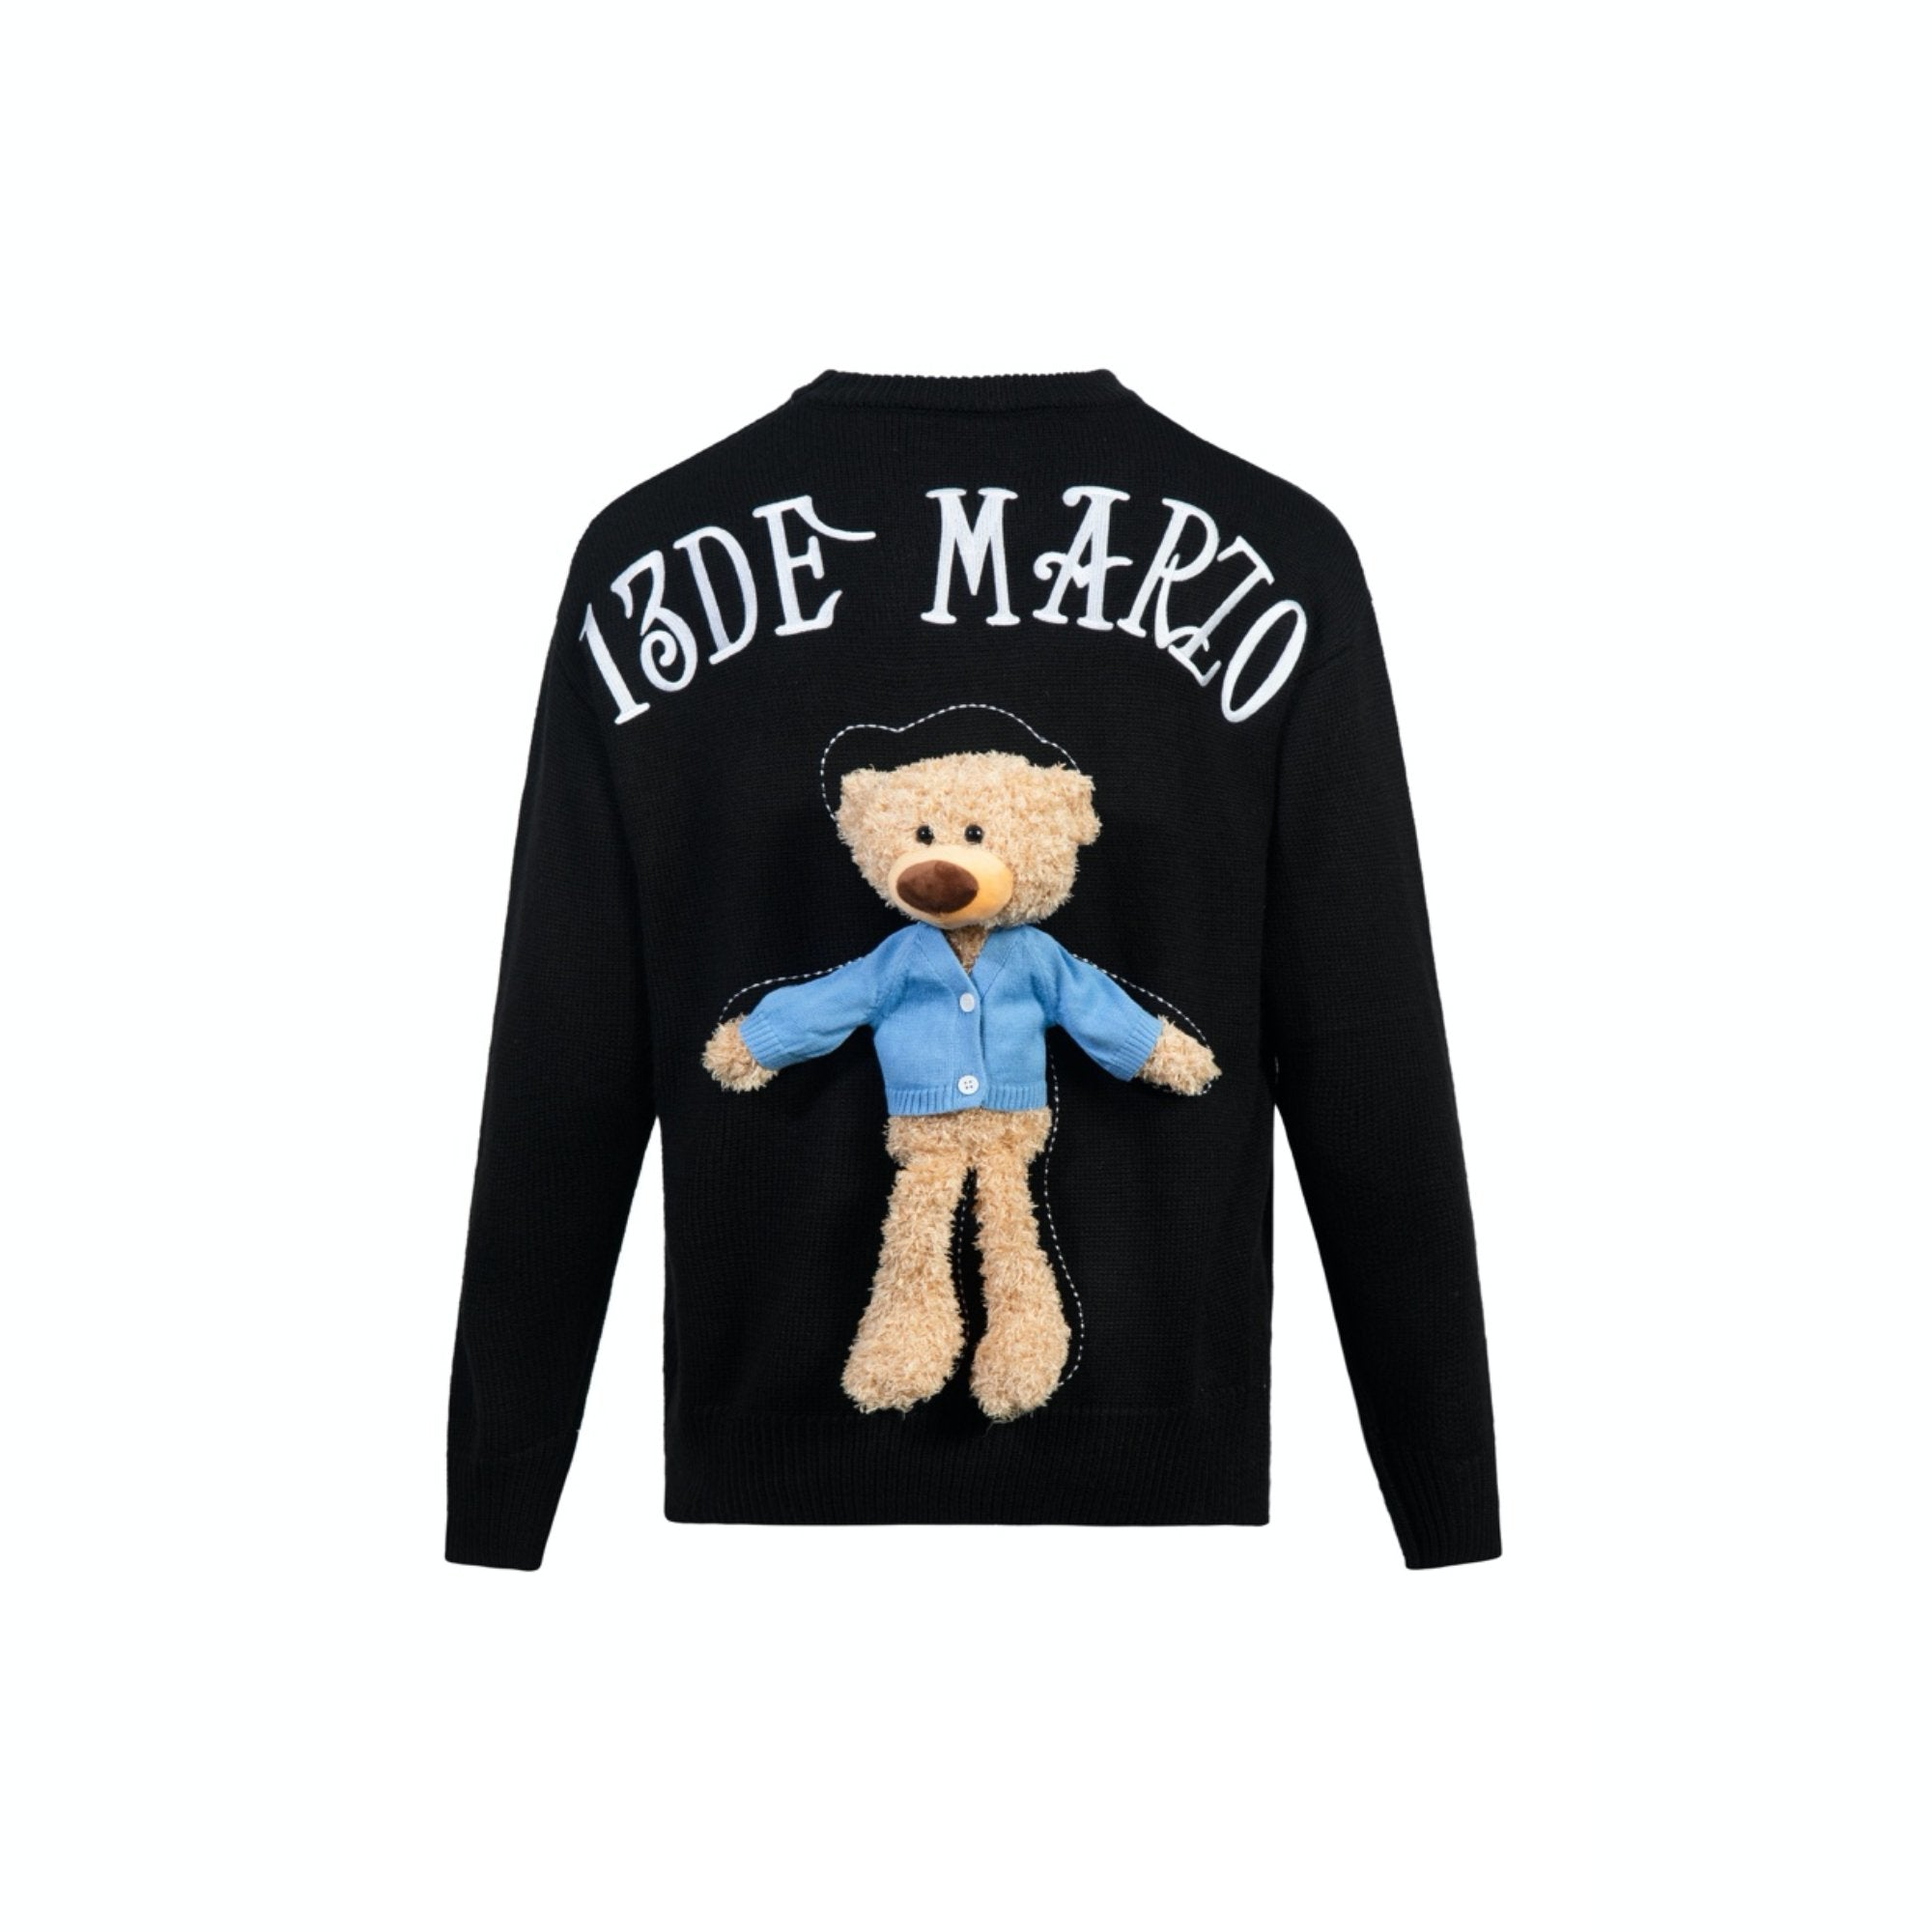 13 DE MARZO Clothed Teddy Bear Sweater Black | MADA IN CHINA